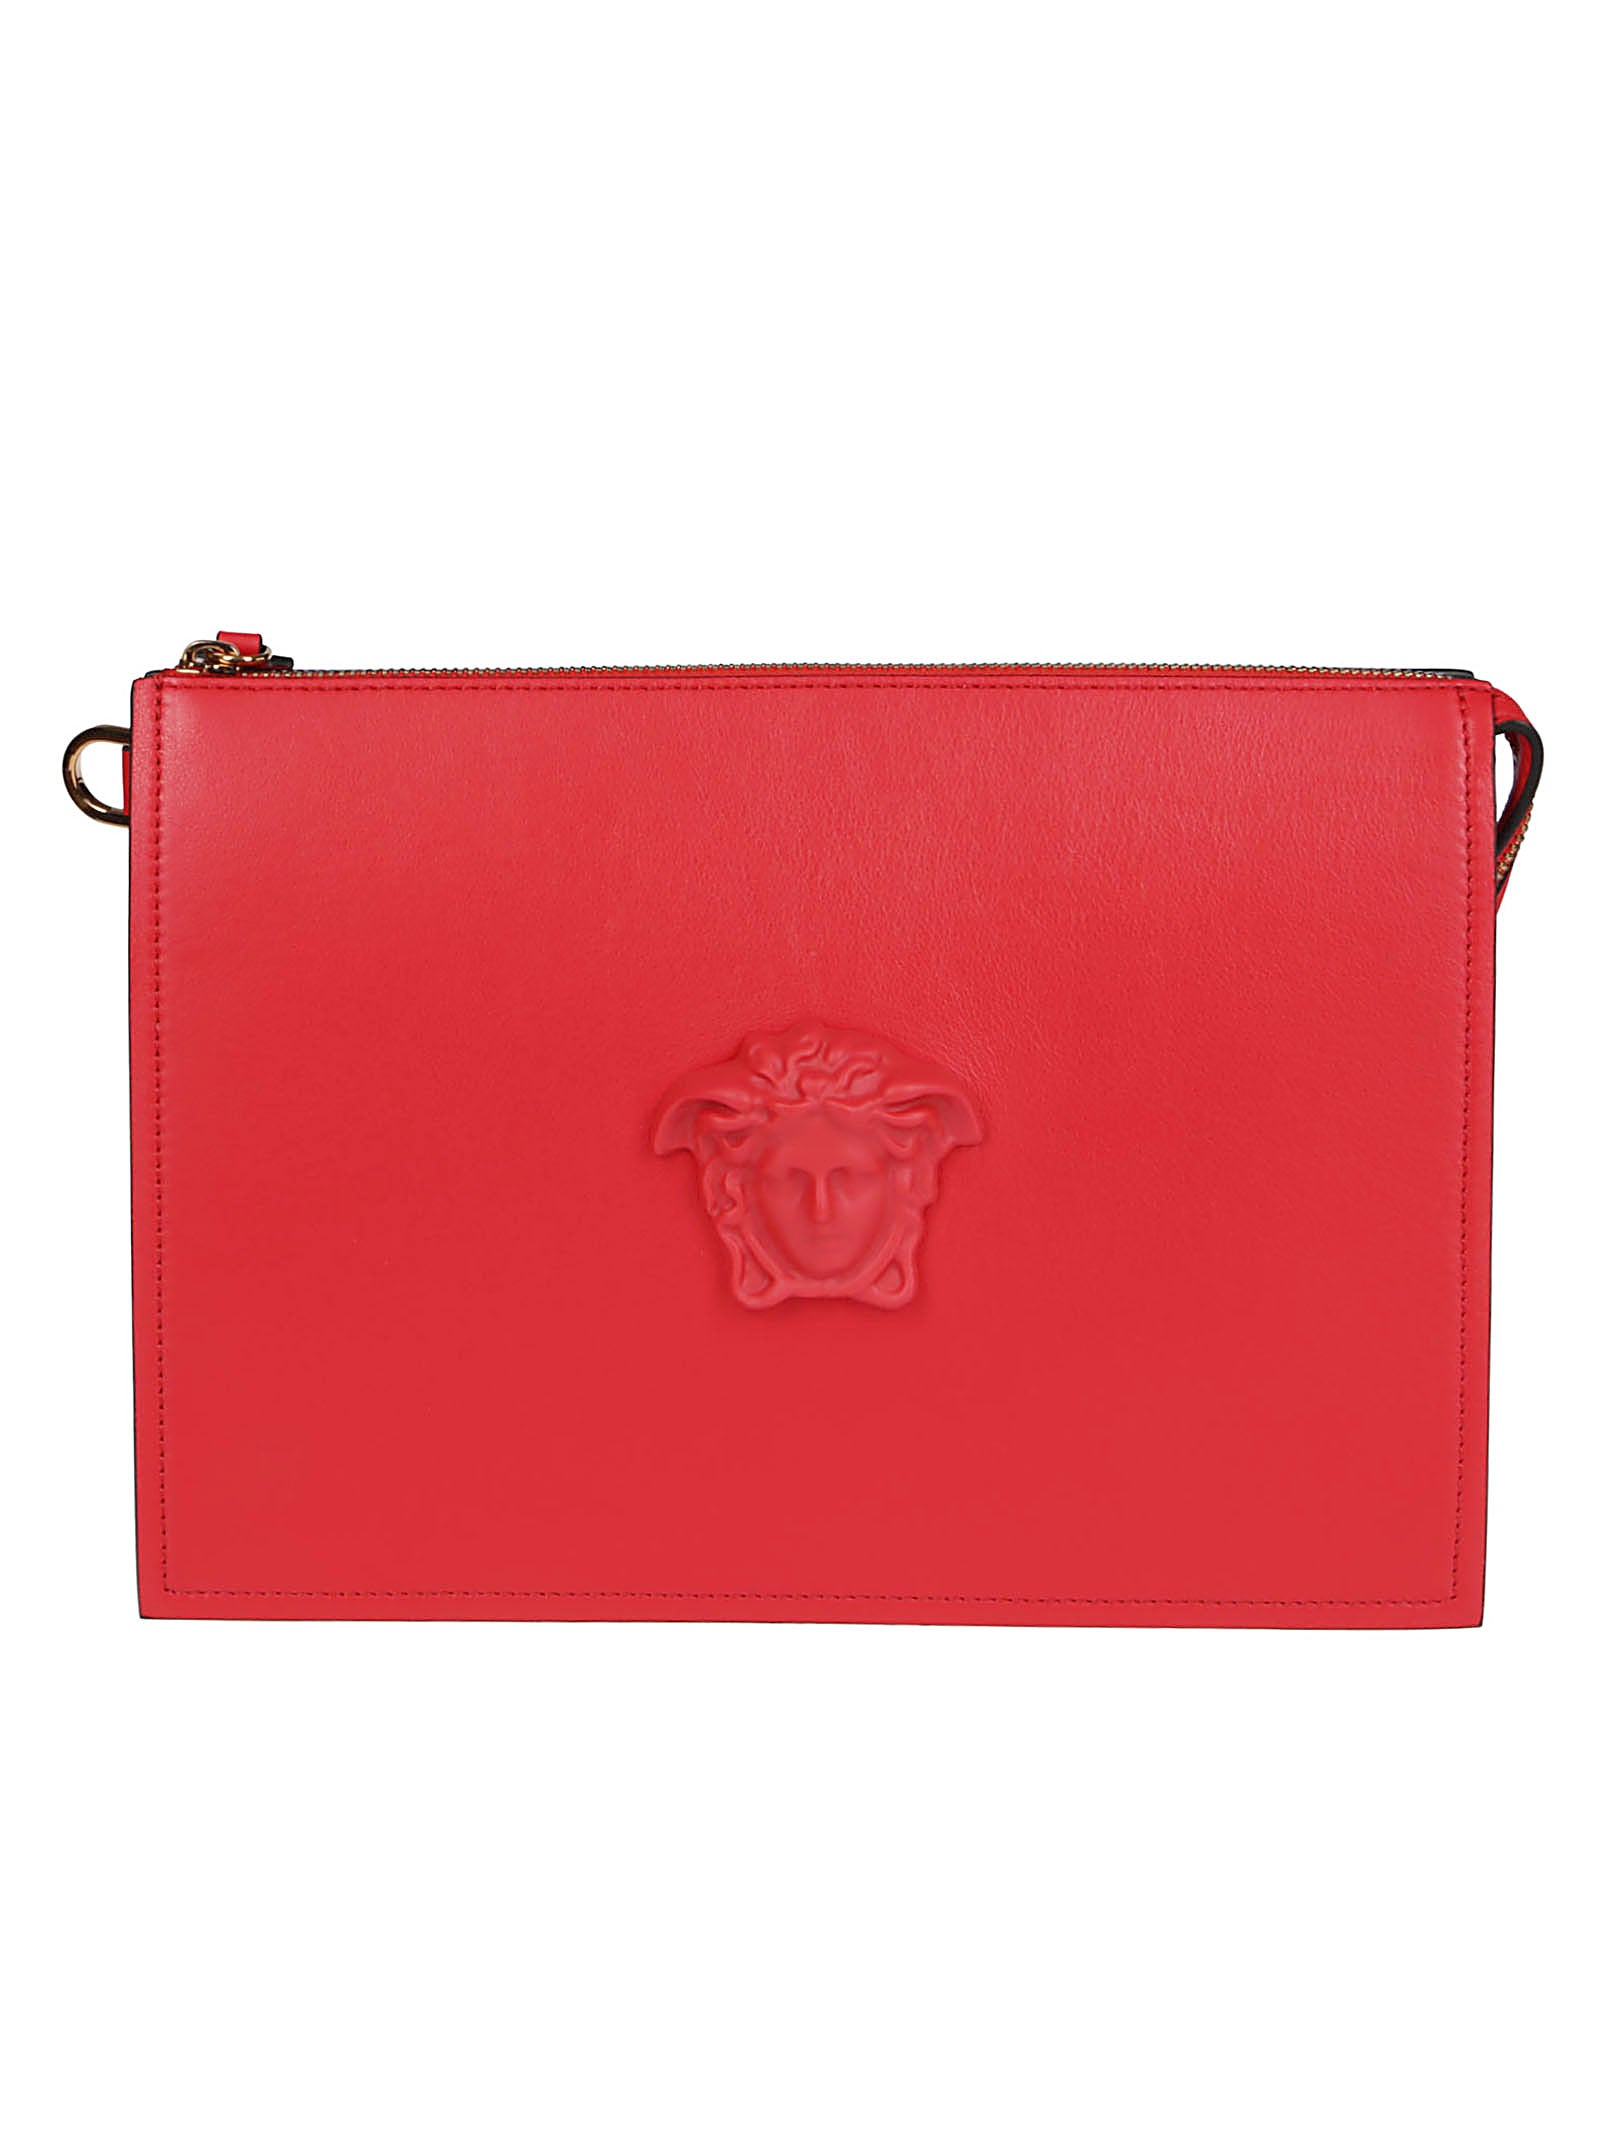 Versace VERSACE LA MEDUSA LARGE CLUTCH BAG